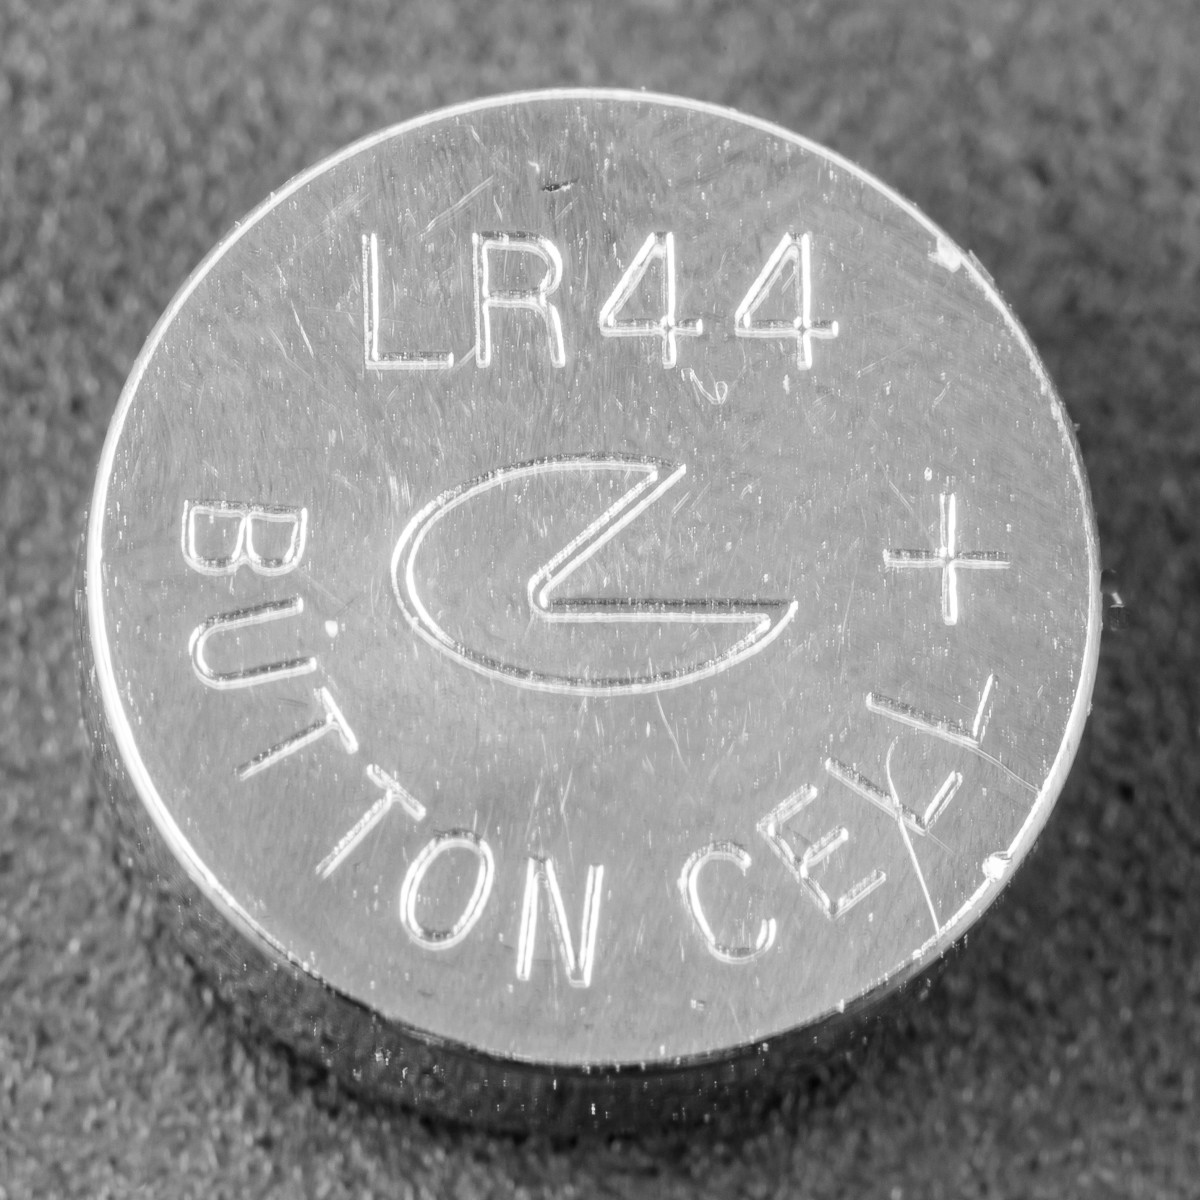 You want to stock up on LR44 batteries to always keep your Doberman Security devices up and running.